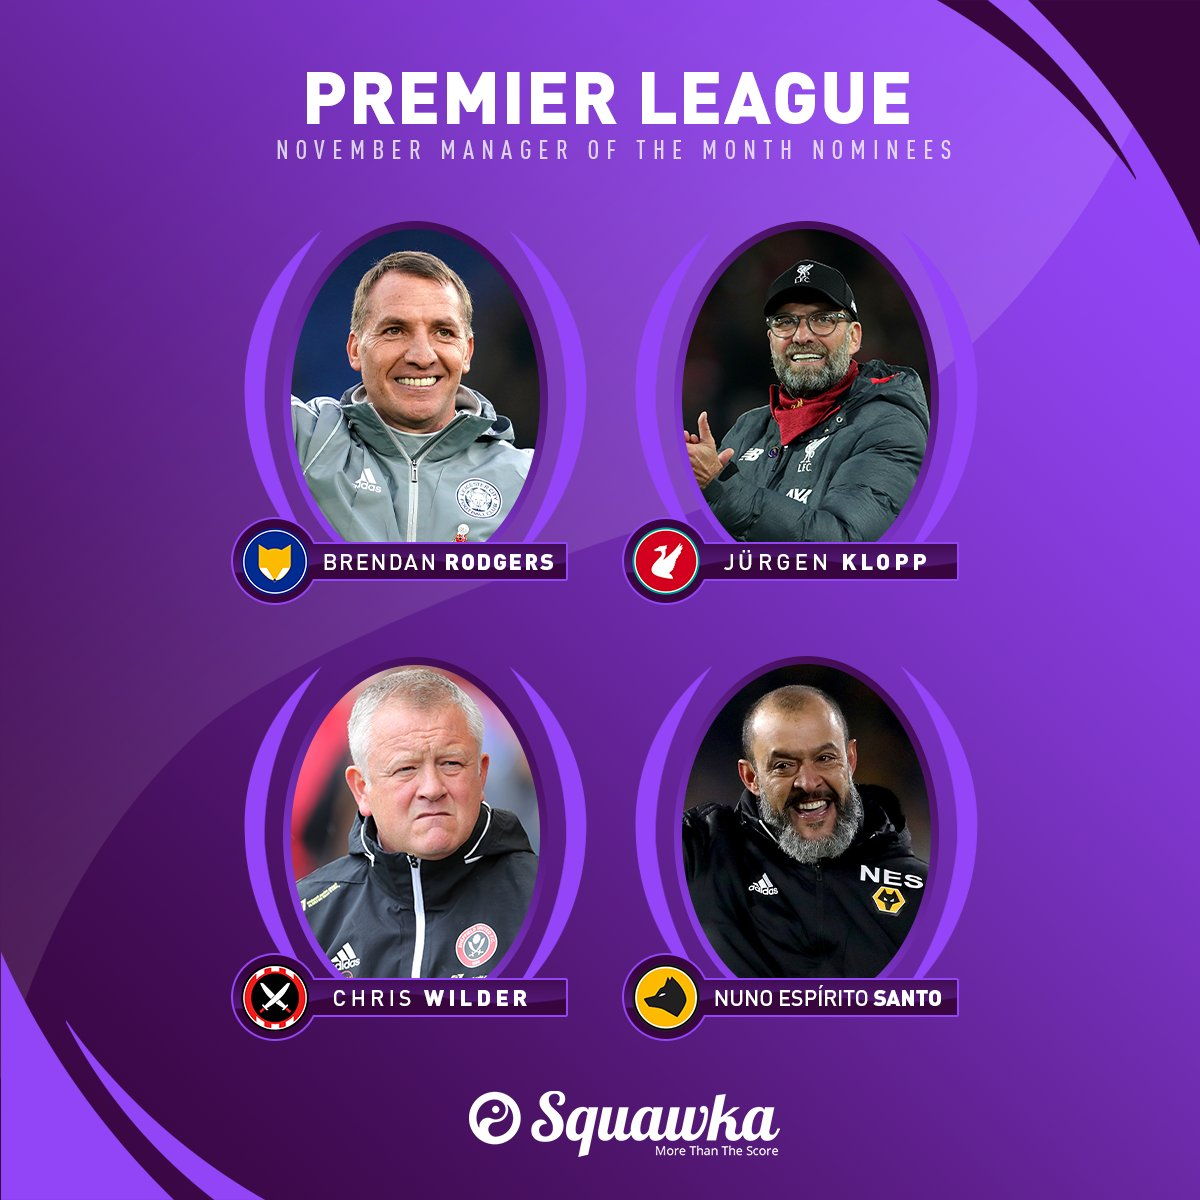 OFFICIAL: The Premier League November Manager of the Month nominees: • Brendan Rodgers • Jürgen Klopp • Steve Wilder • Nuno Espírito Santo Who are you backing to win?